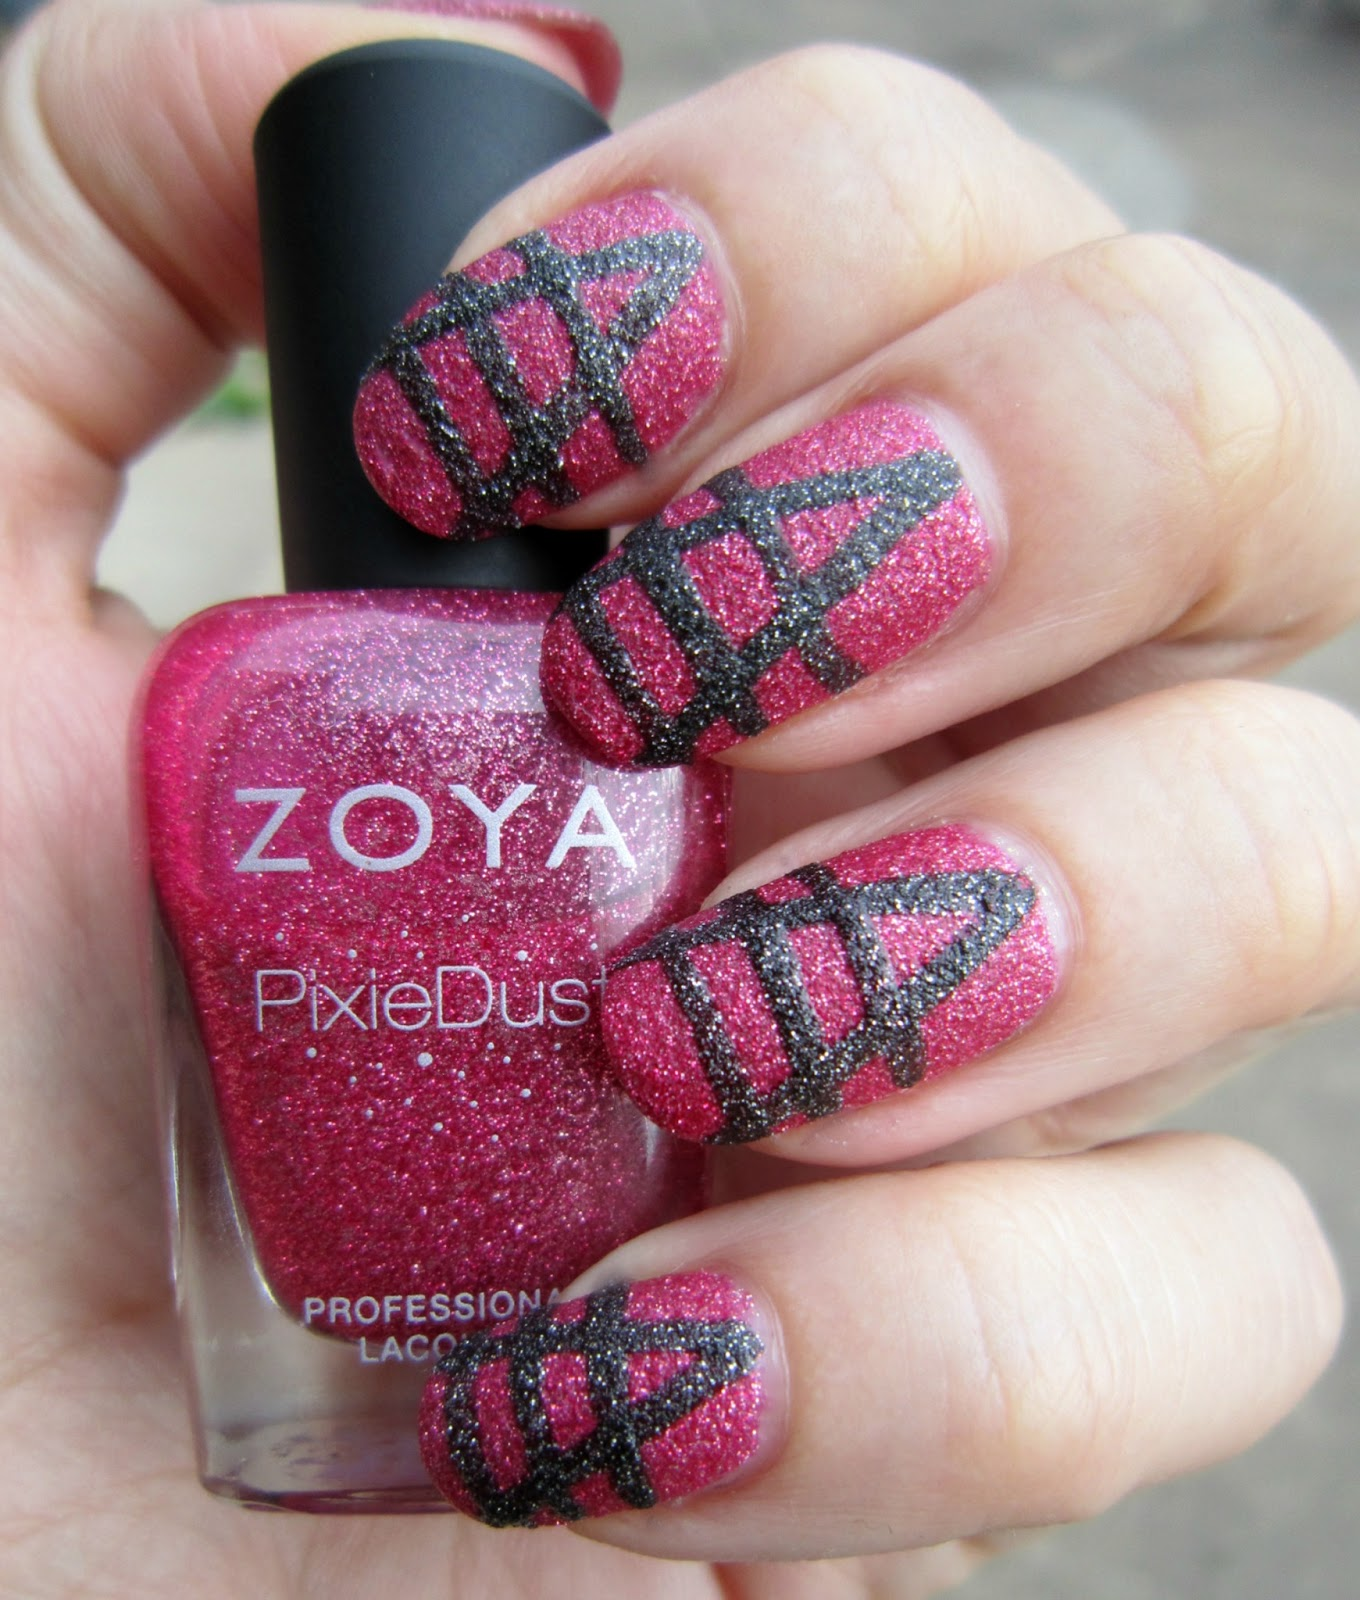 Concrete and Nail Polish: Another Art Deco Nail Art Attempt With Zoya ...